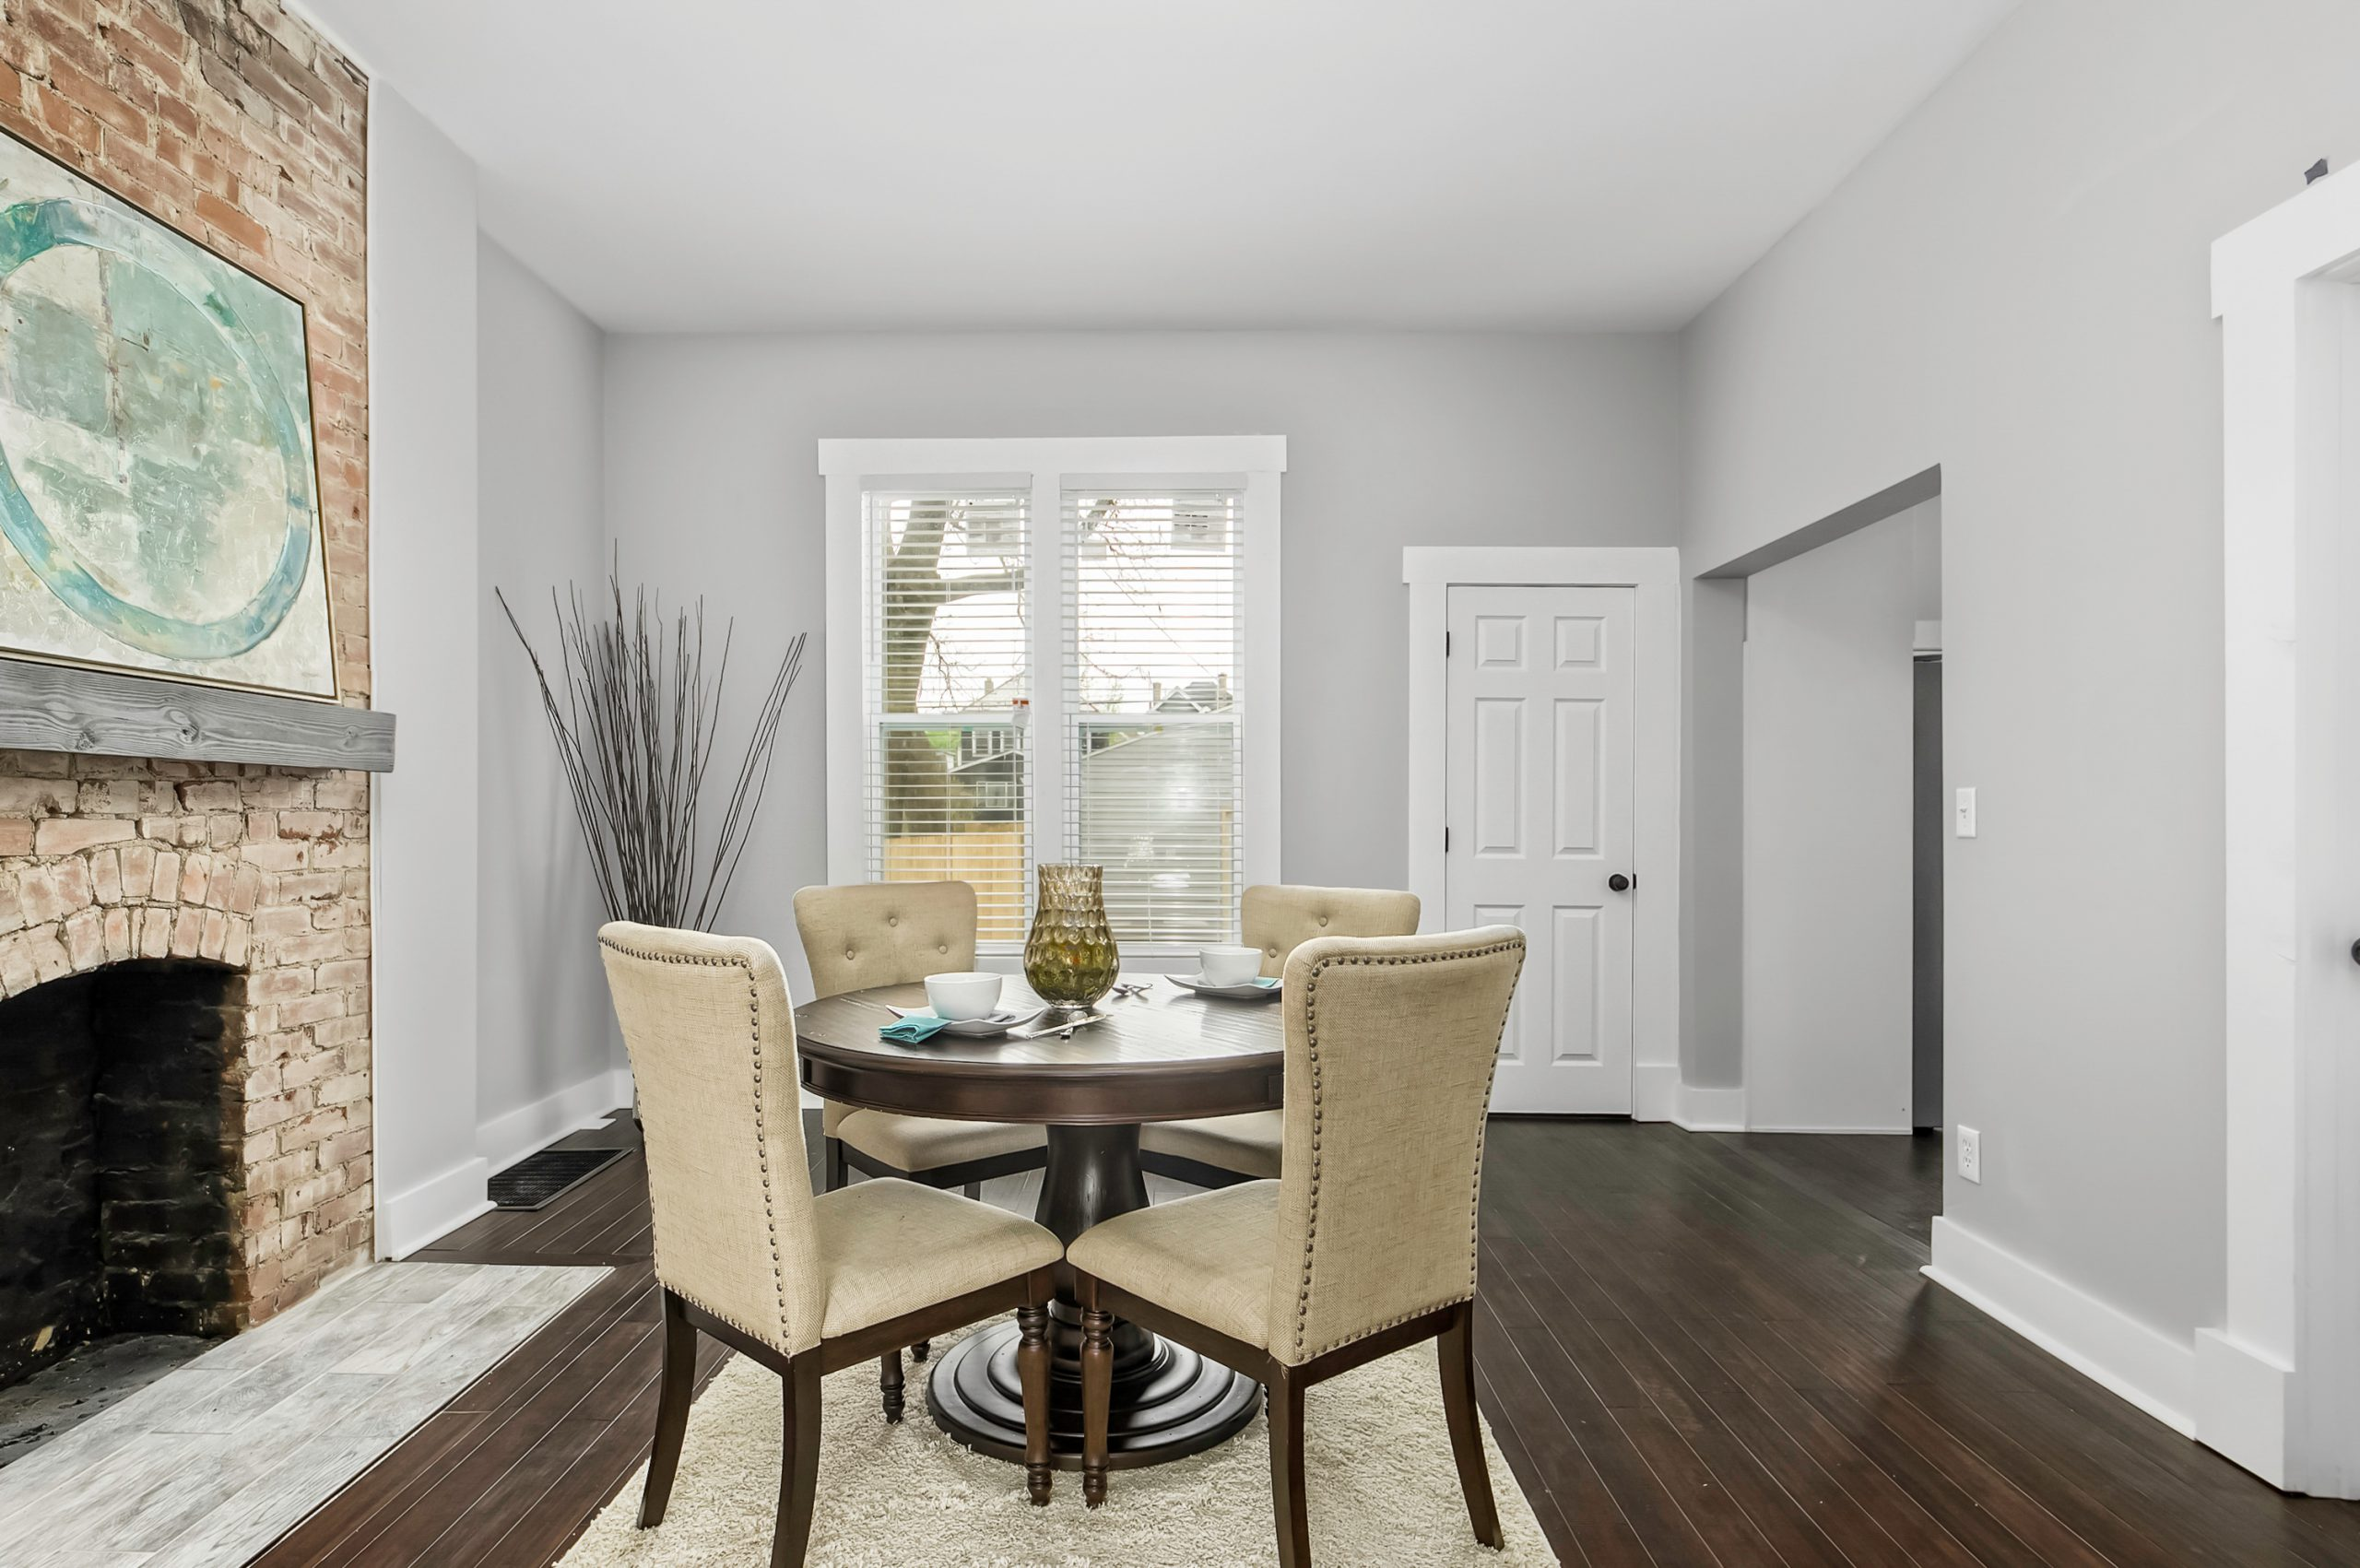 Four chairs positioned around a living room table in a home with white paint on the walls.